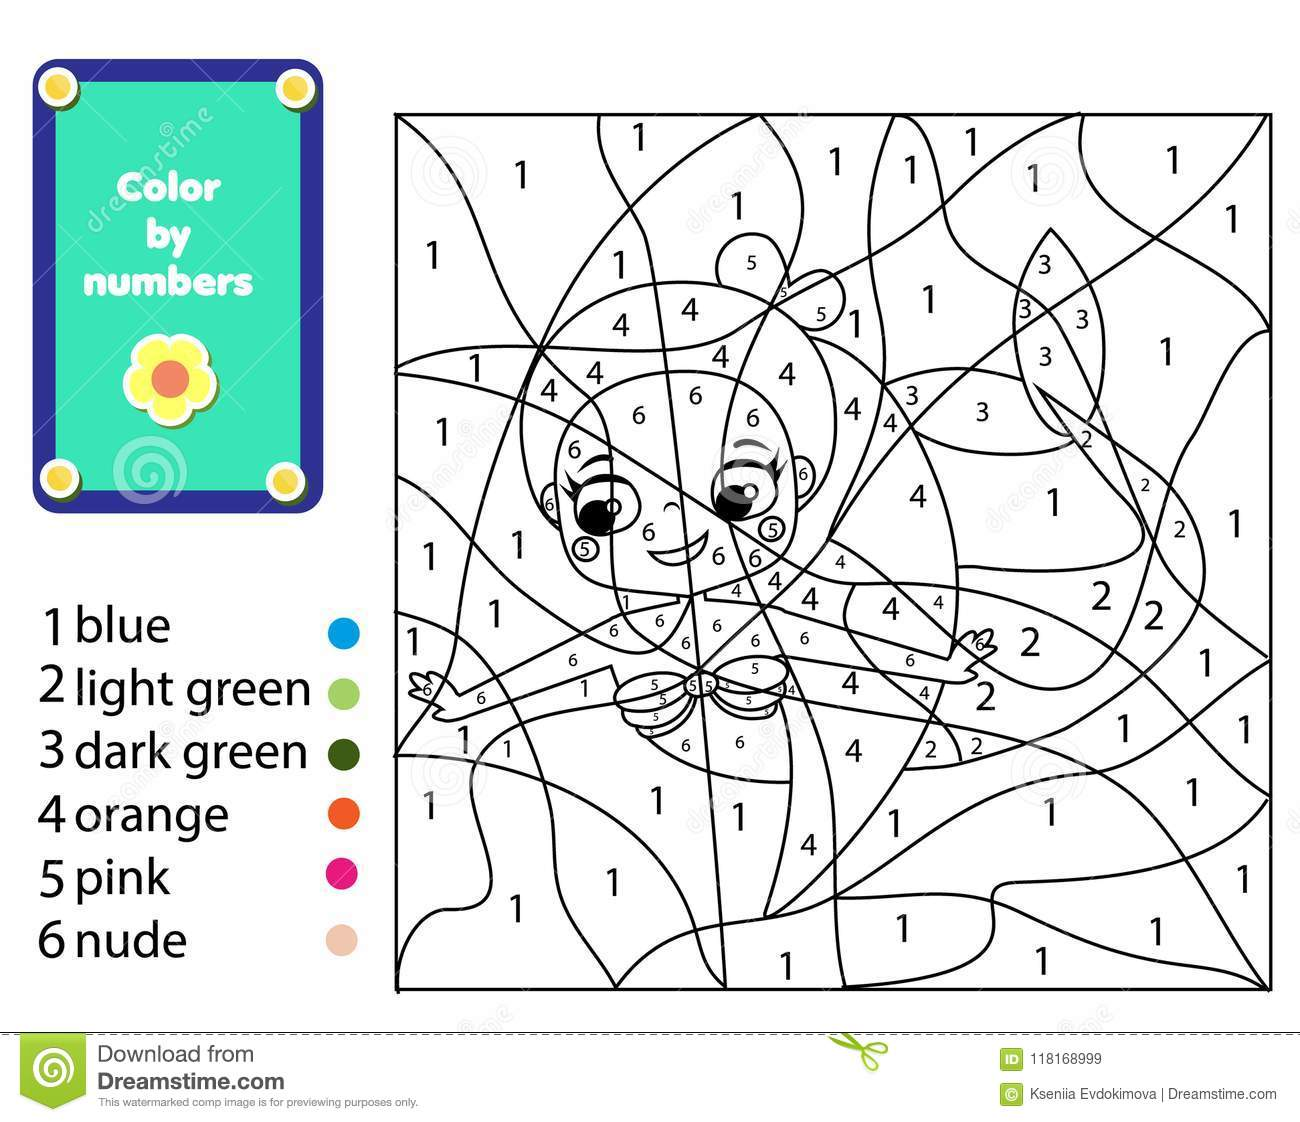 Children Educational Game Mermaid Coloring Page Color By Numbers Printable Activity For Kids